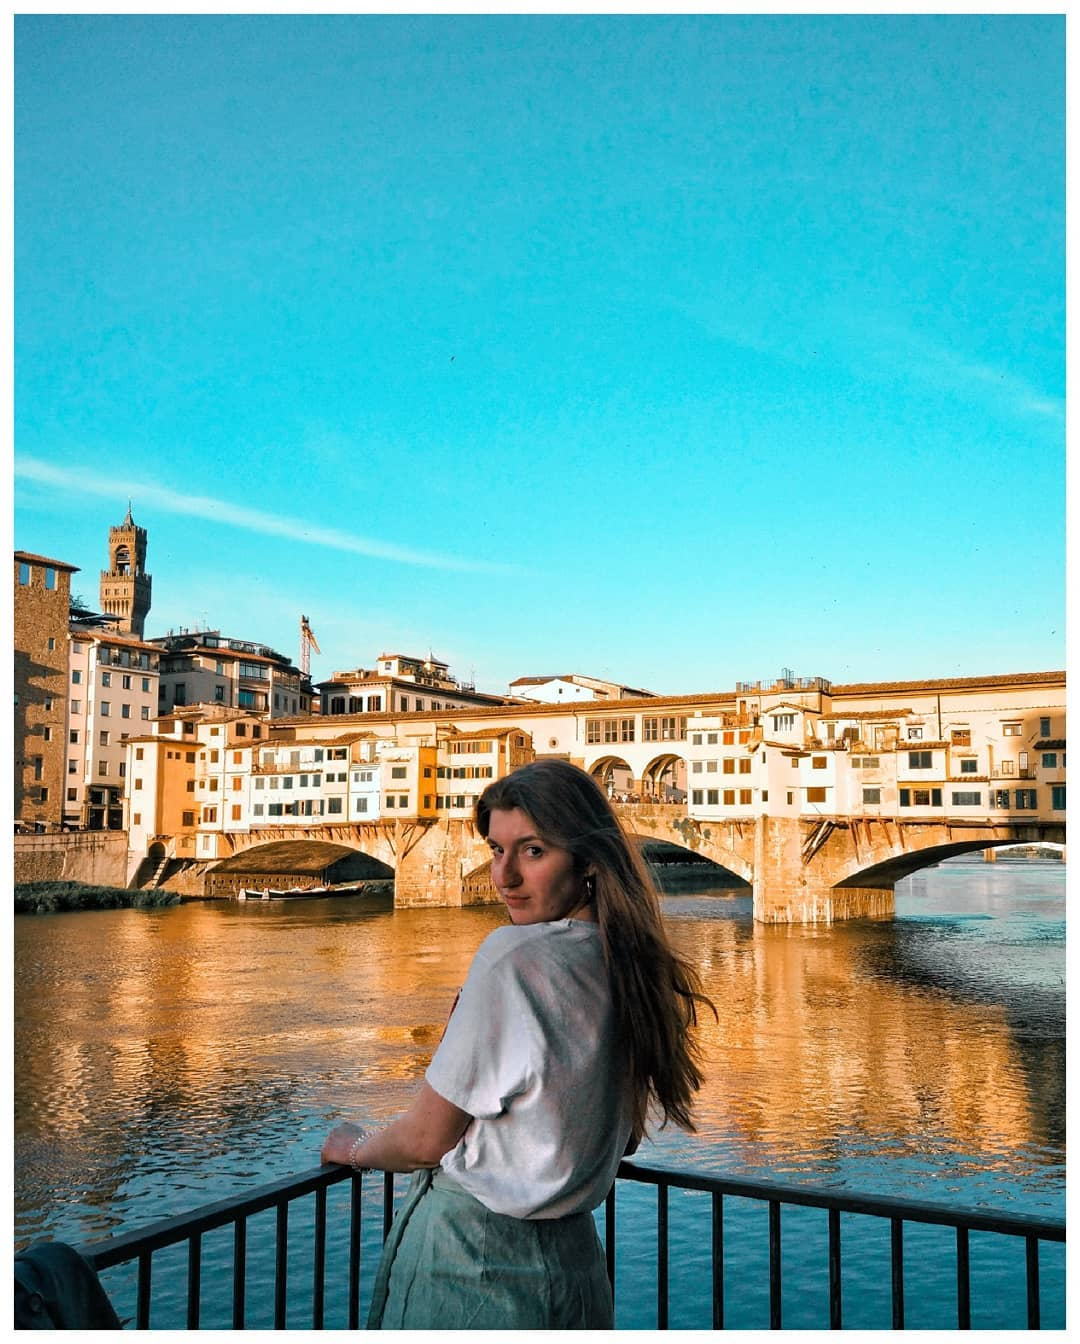 What to see in Florence- Qué ver en Florencia: Ponte Vecchio - Martina Lubian